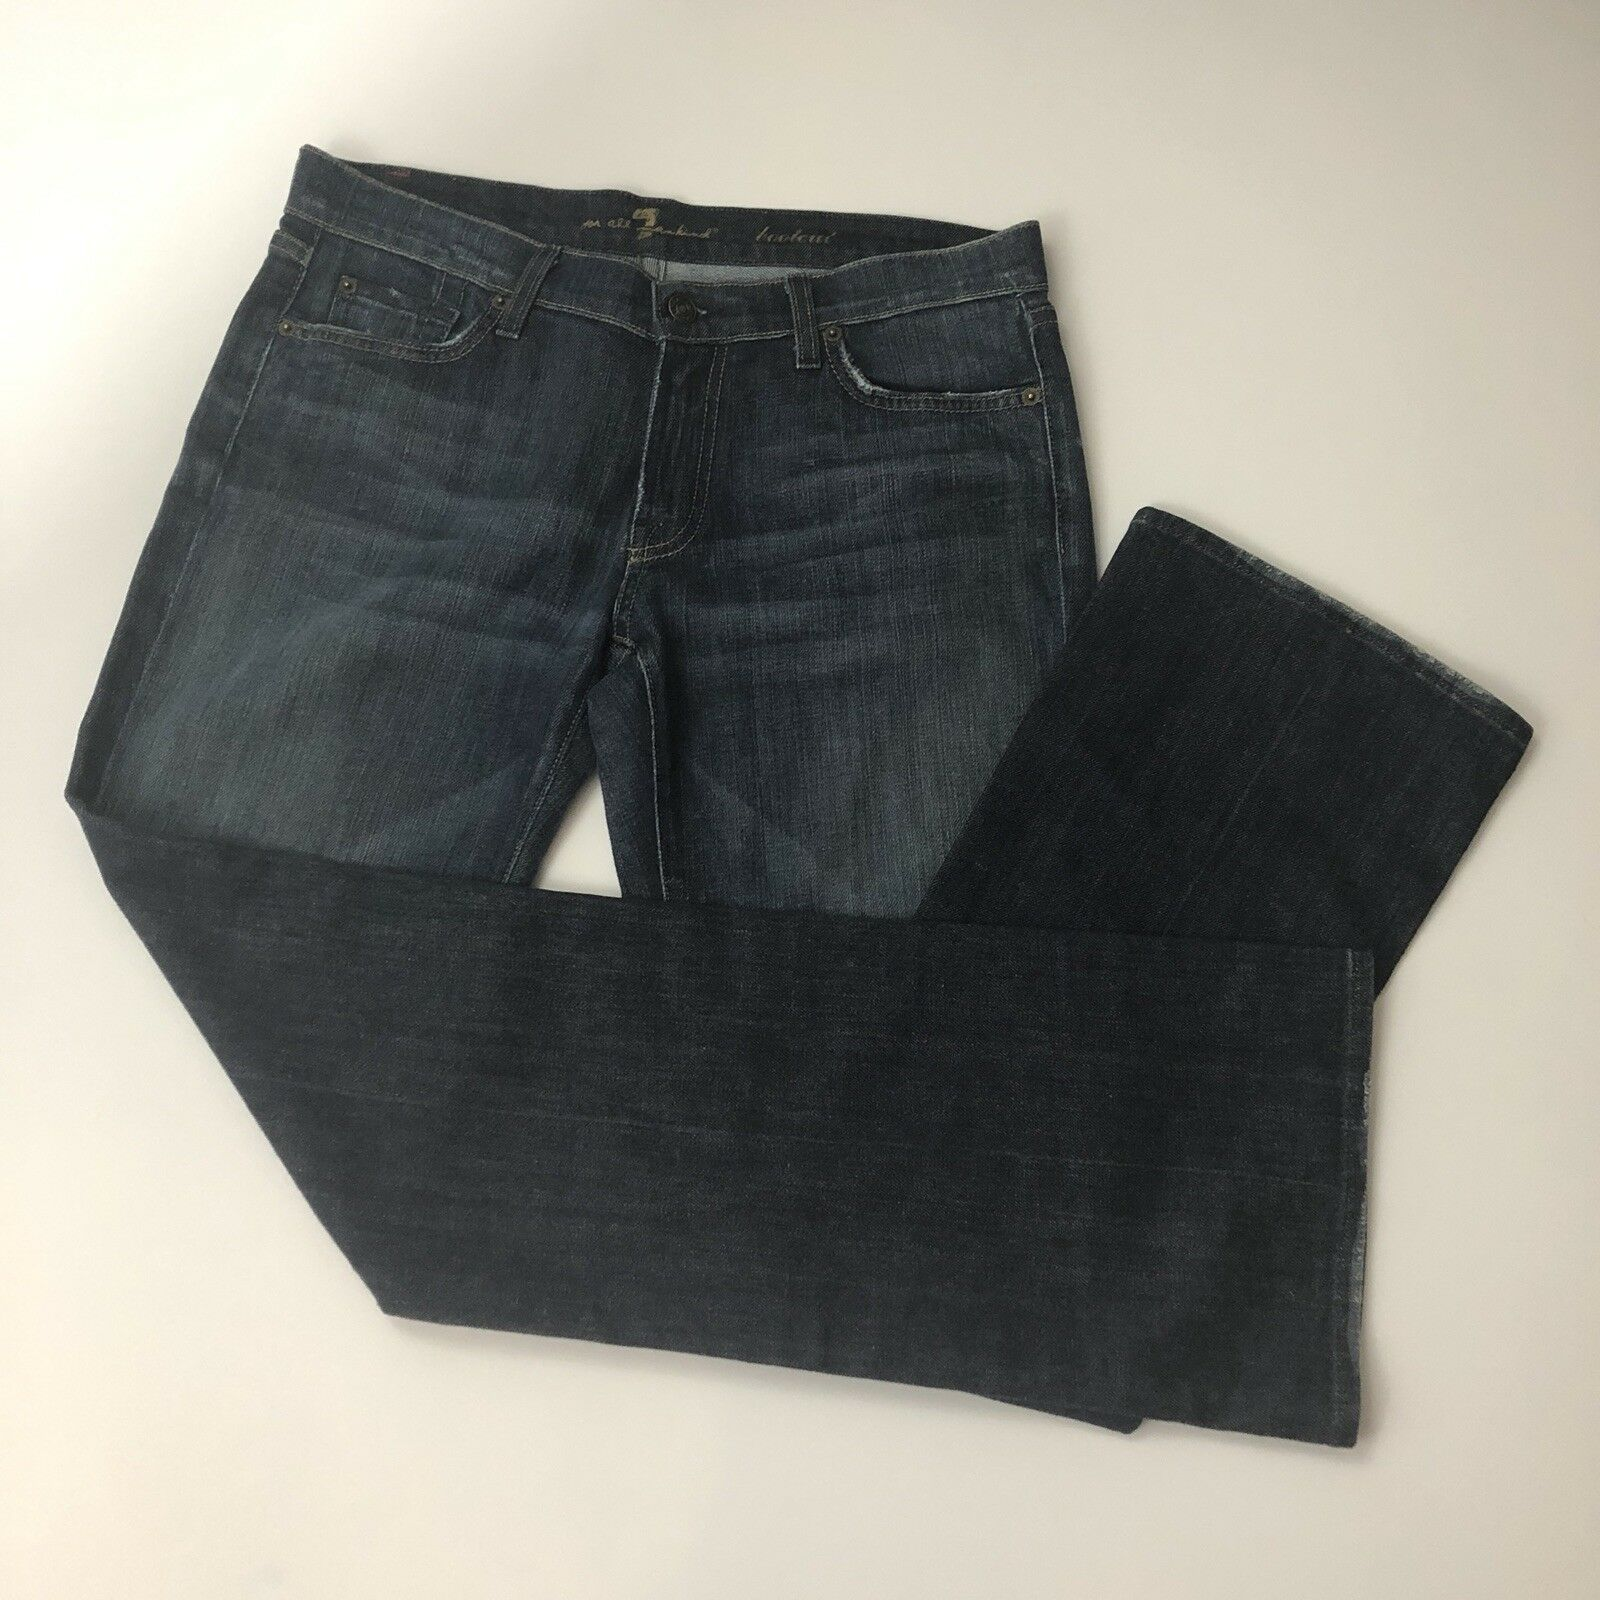 NWOT 7 For All Mankind Bootcut Jeans Size 31